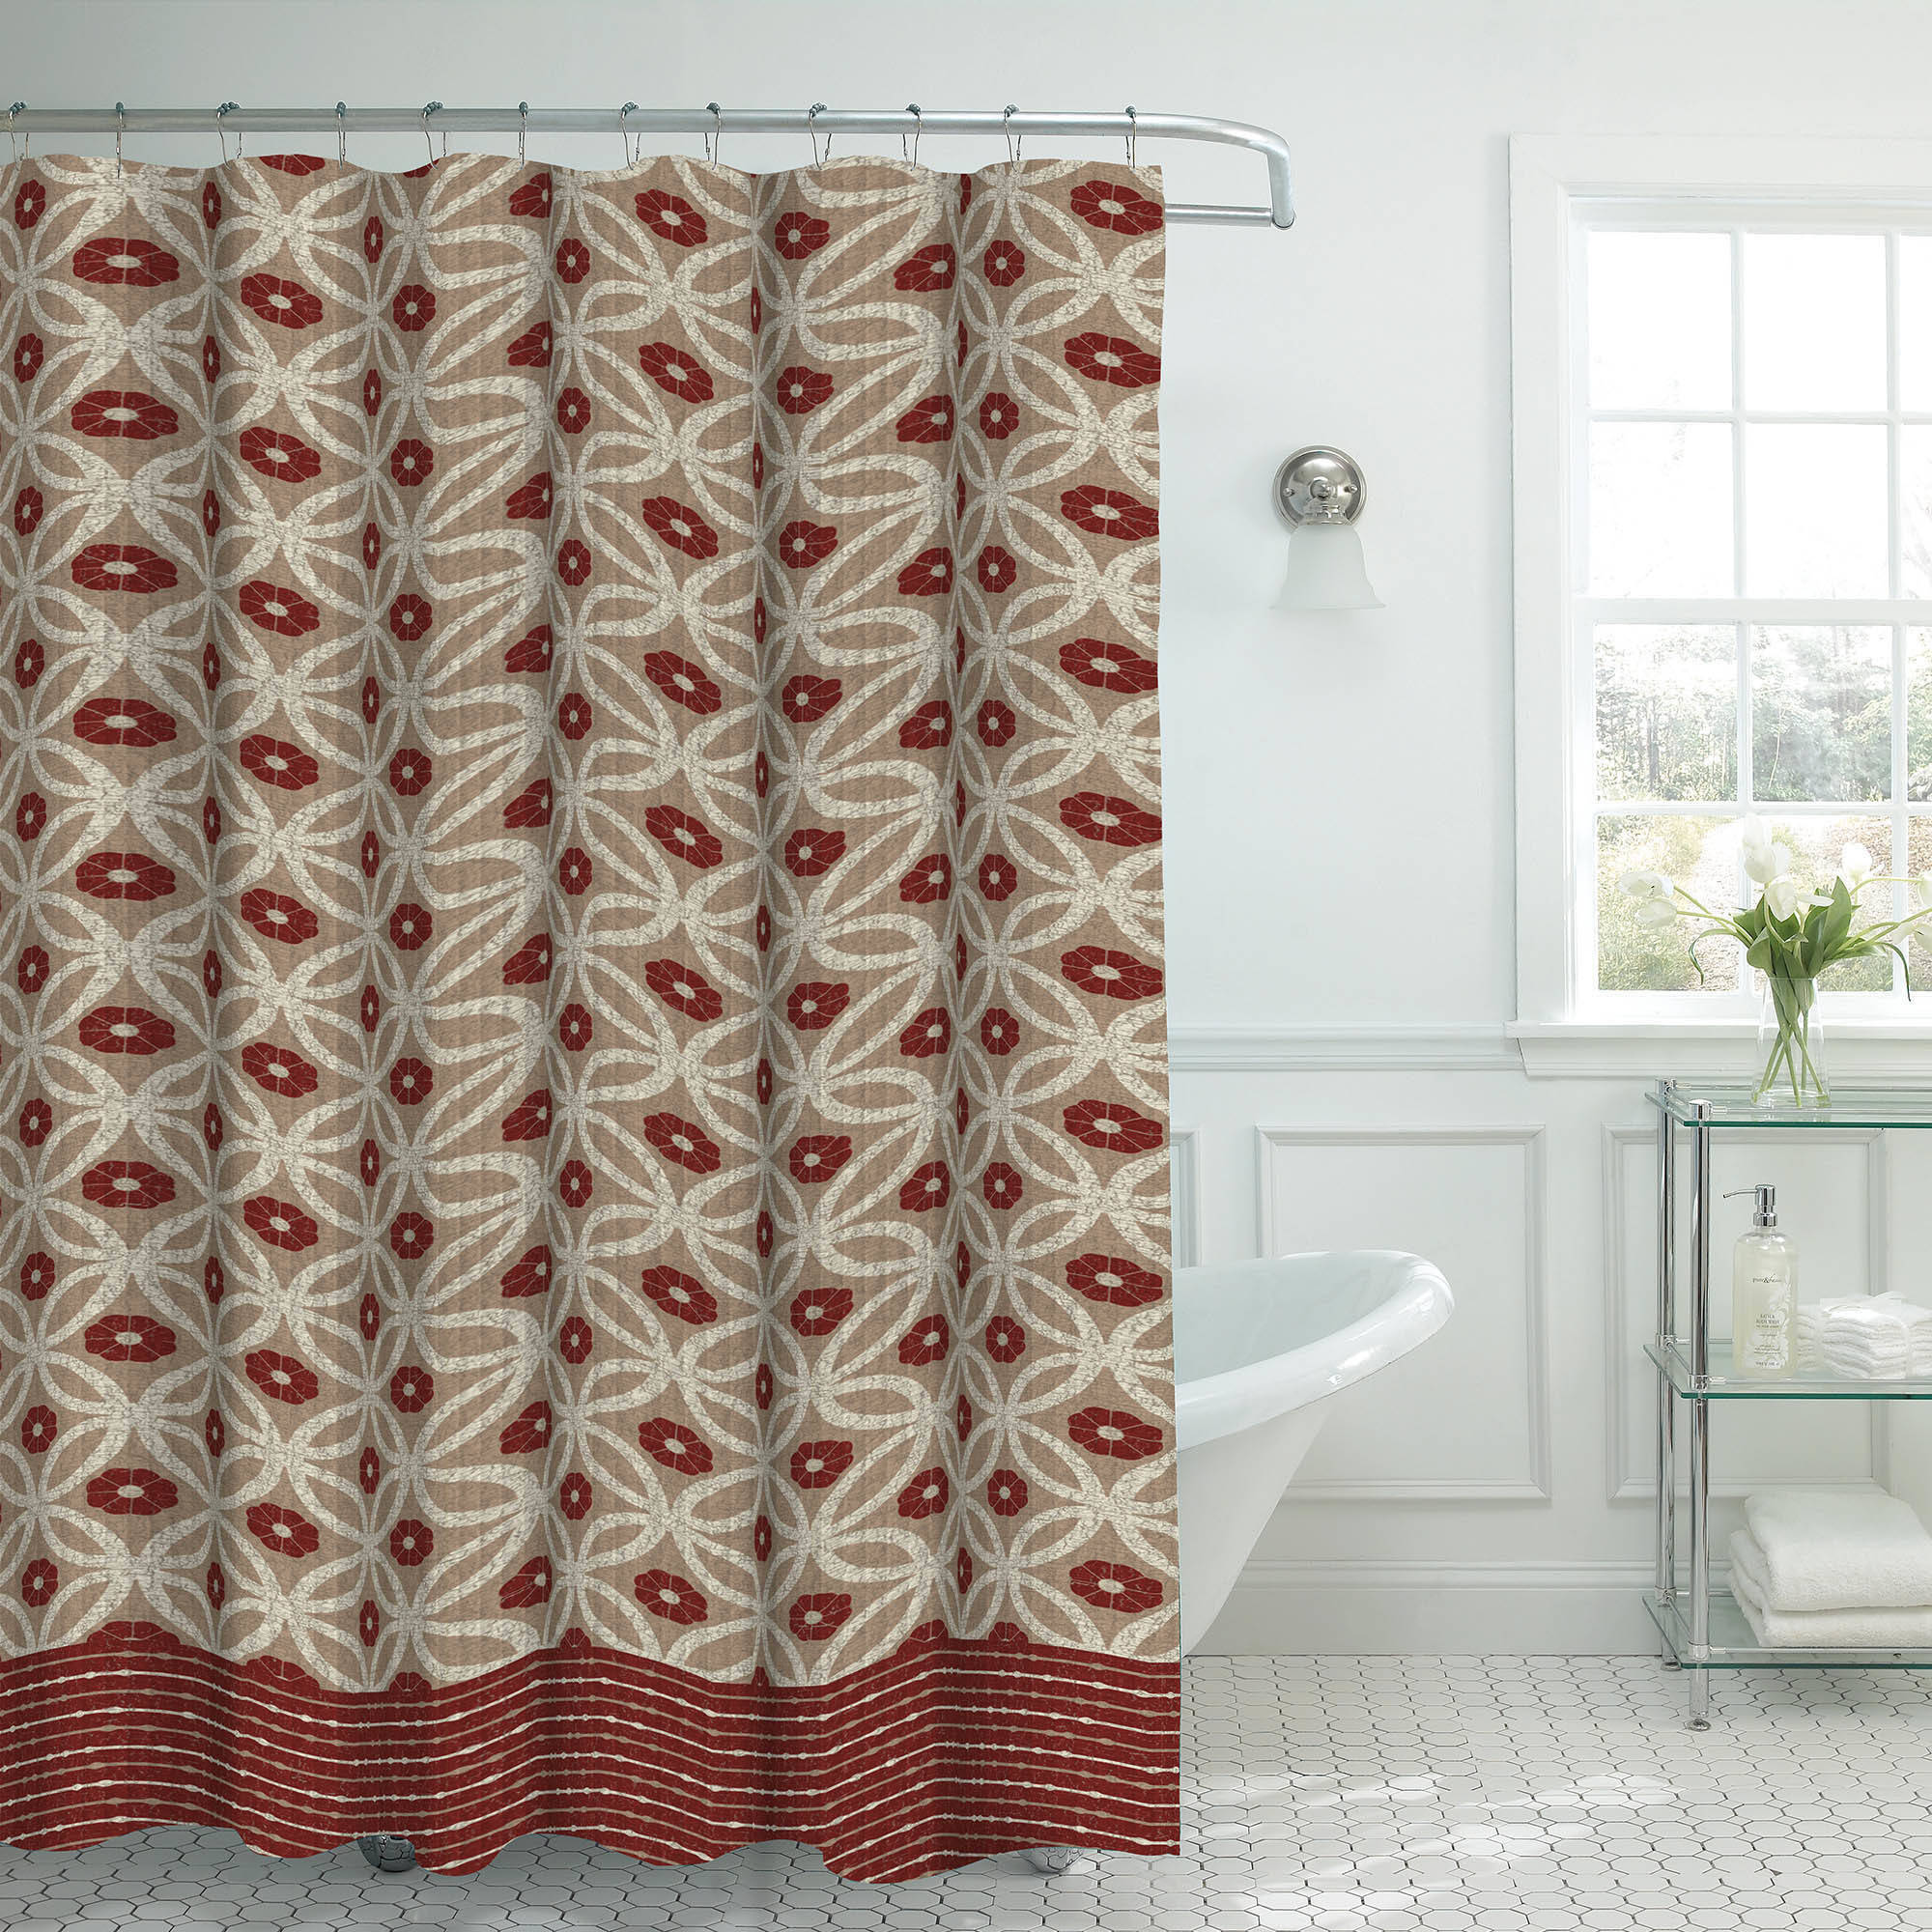 Bounce Comfort Oxford Weave Textured 13-Piece Shower Curtain Set with Metal Roller Hooks, Hartford Red/Linen